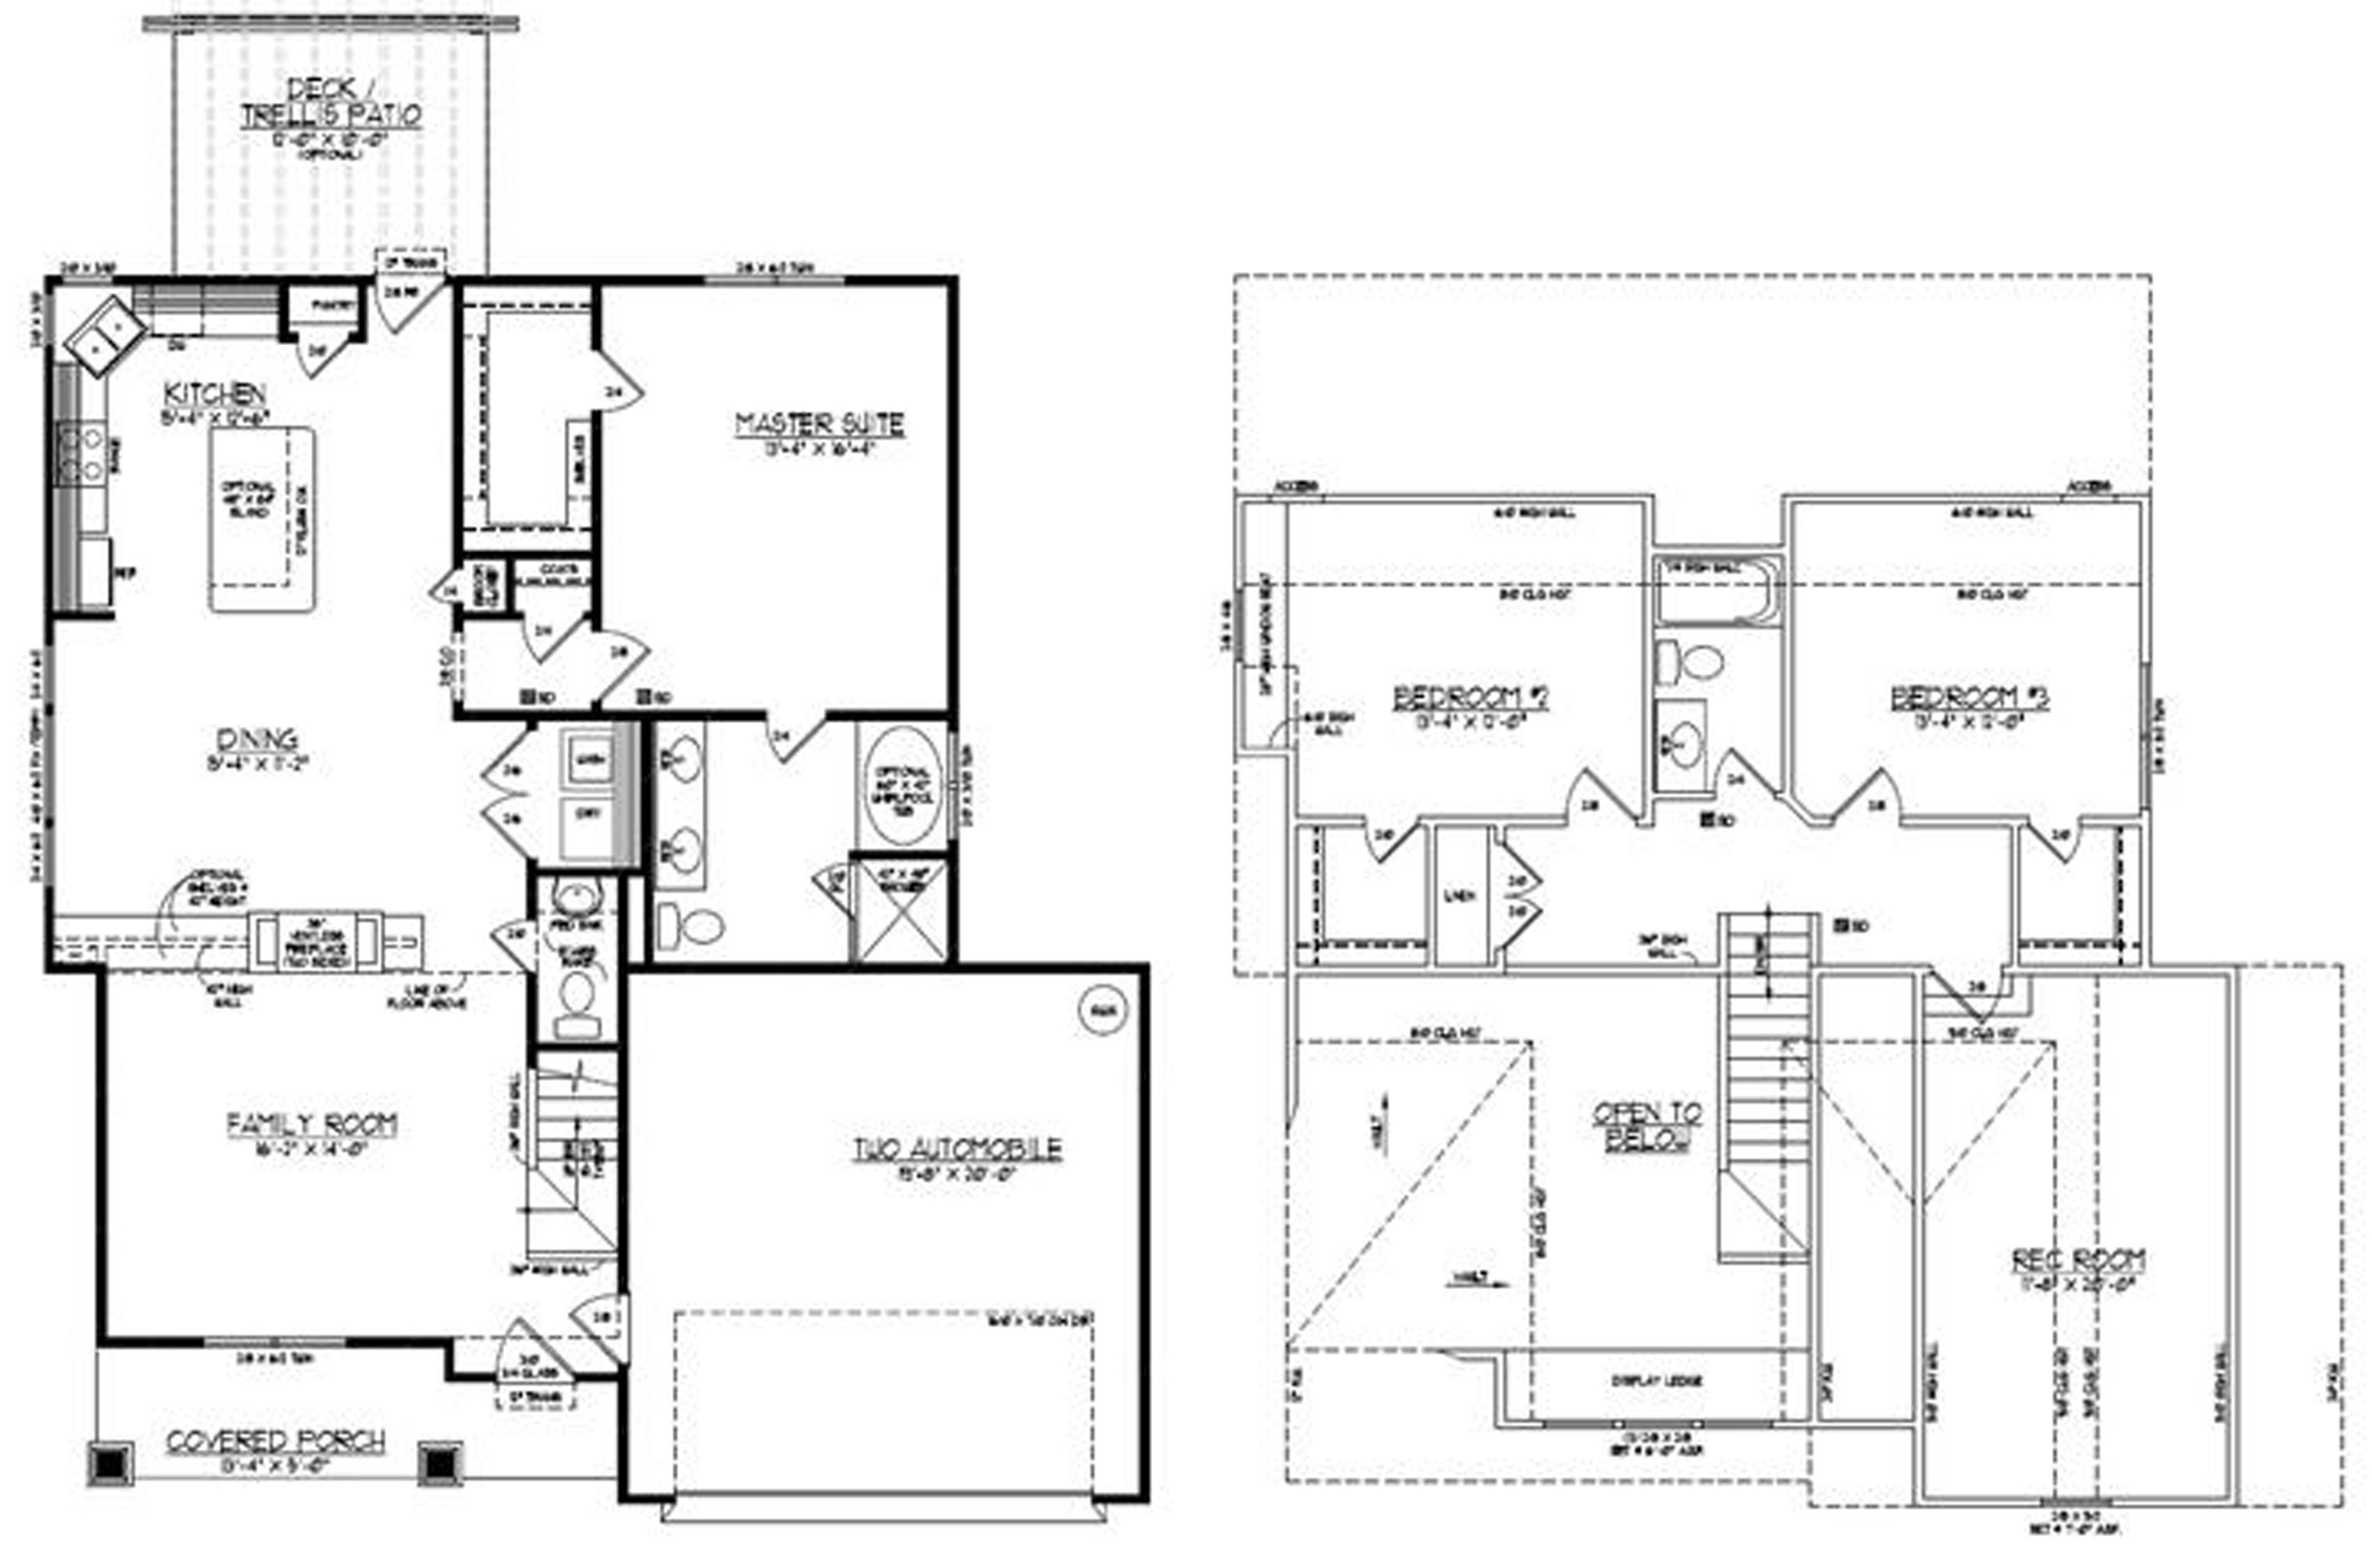 House Plans   Design Lines  Ltd     Building my Own